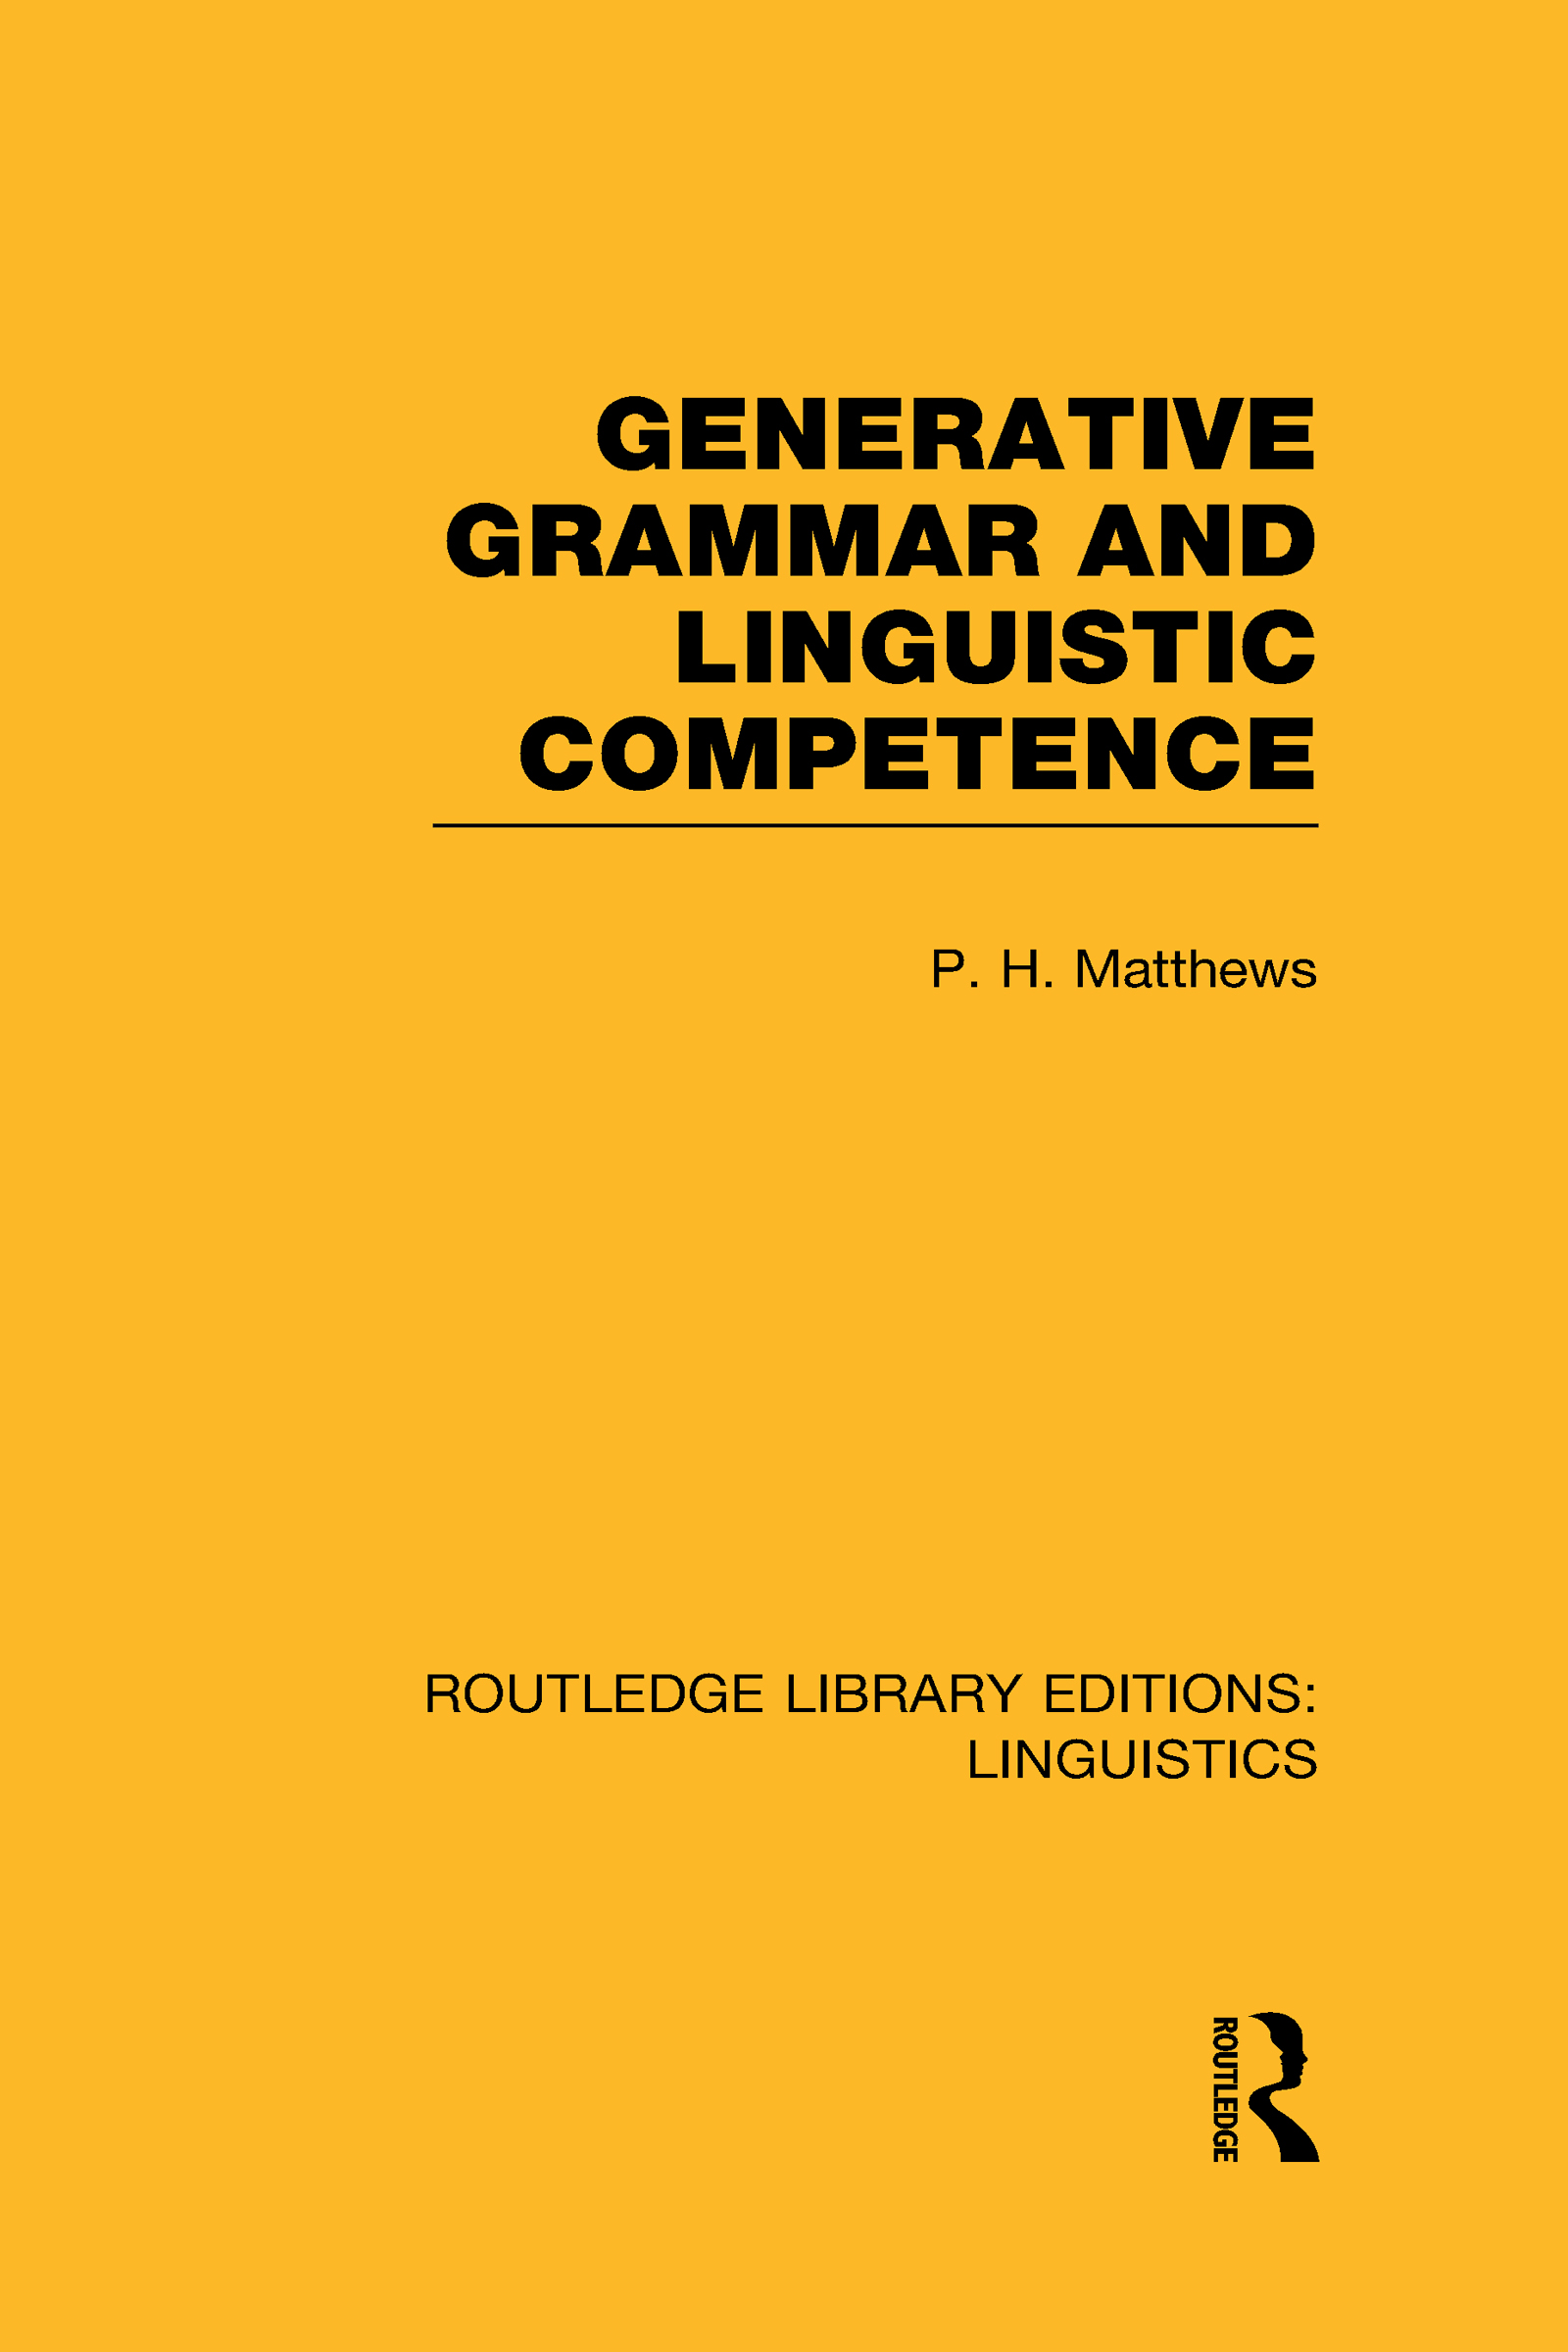 Generative Grammar and Linguistic Competence (RLE Linguistics B: Grammar) (Hardback) book cover